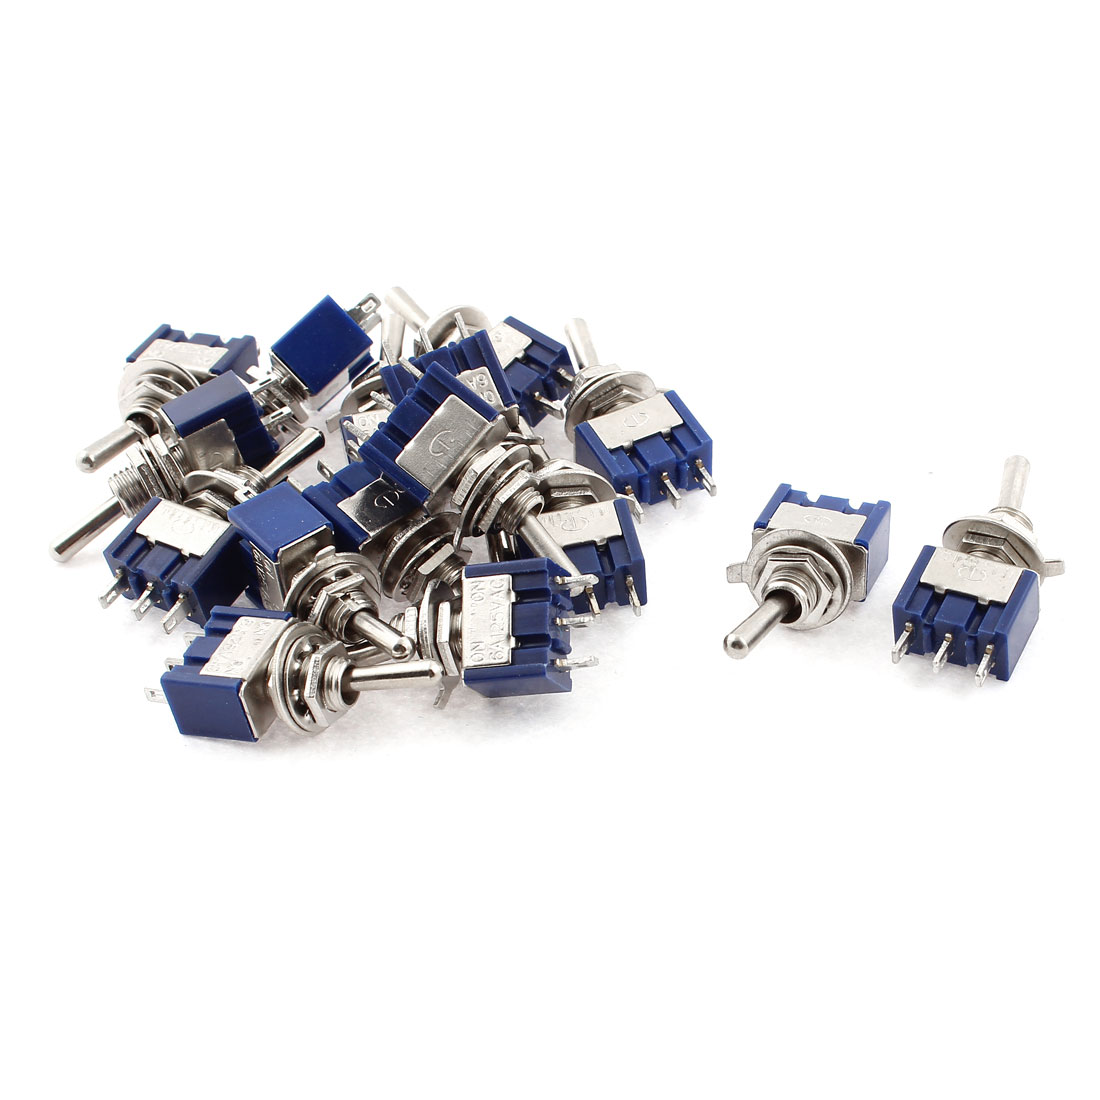 AC 125V 6A SPDT 2 Positions ON/ON 6mm Dia Thread 3 Terminals Toggle Switch 16pcs